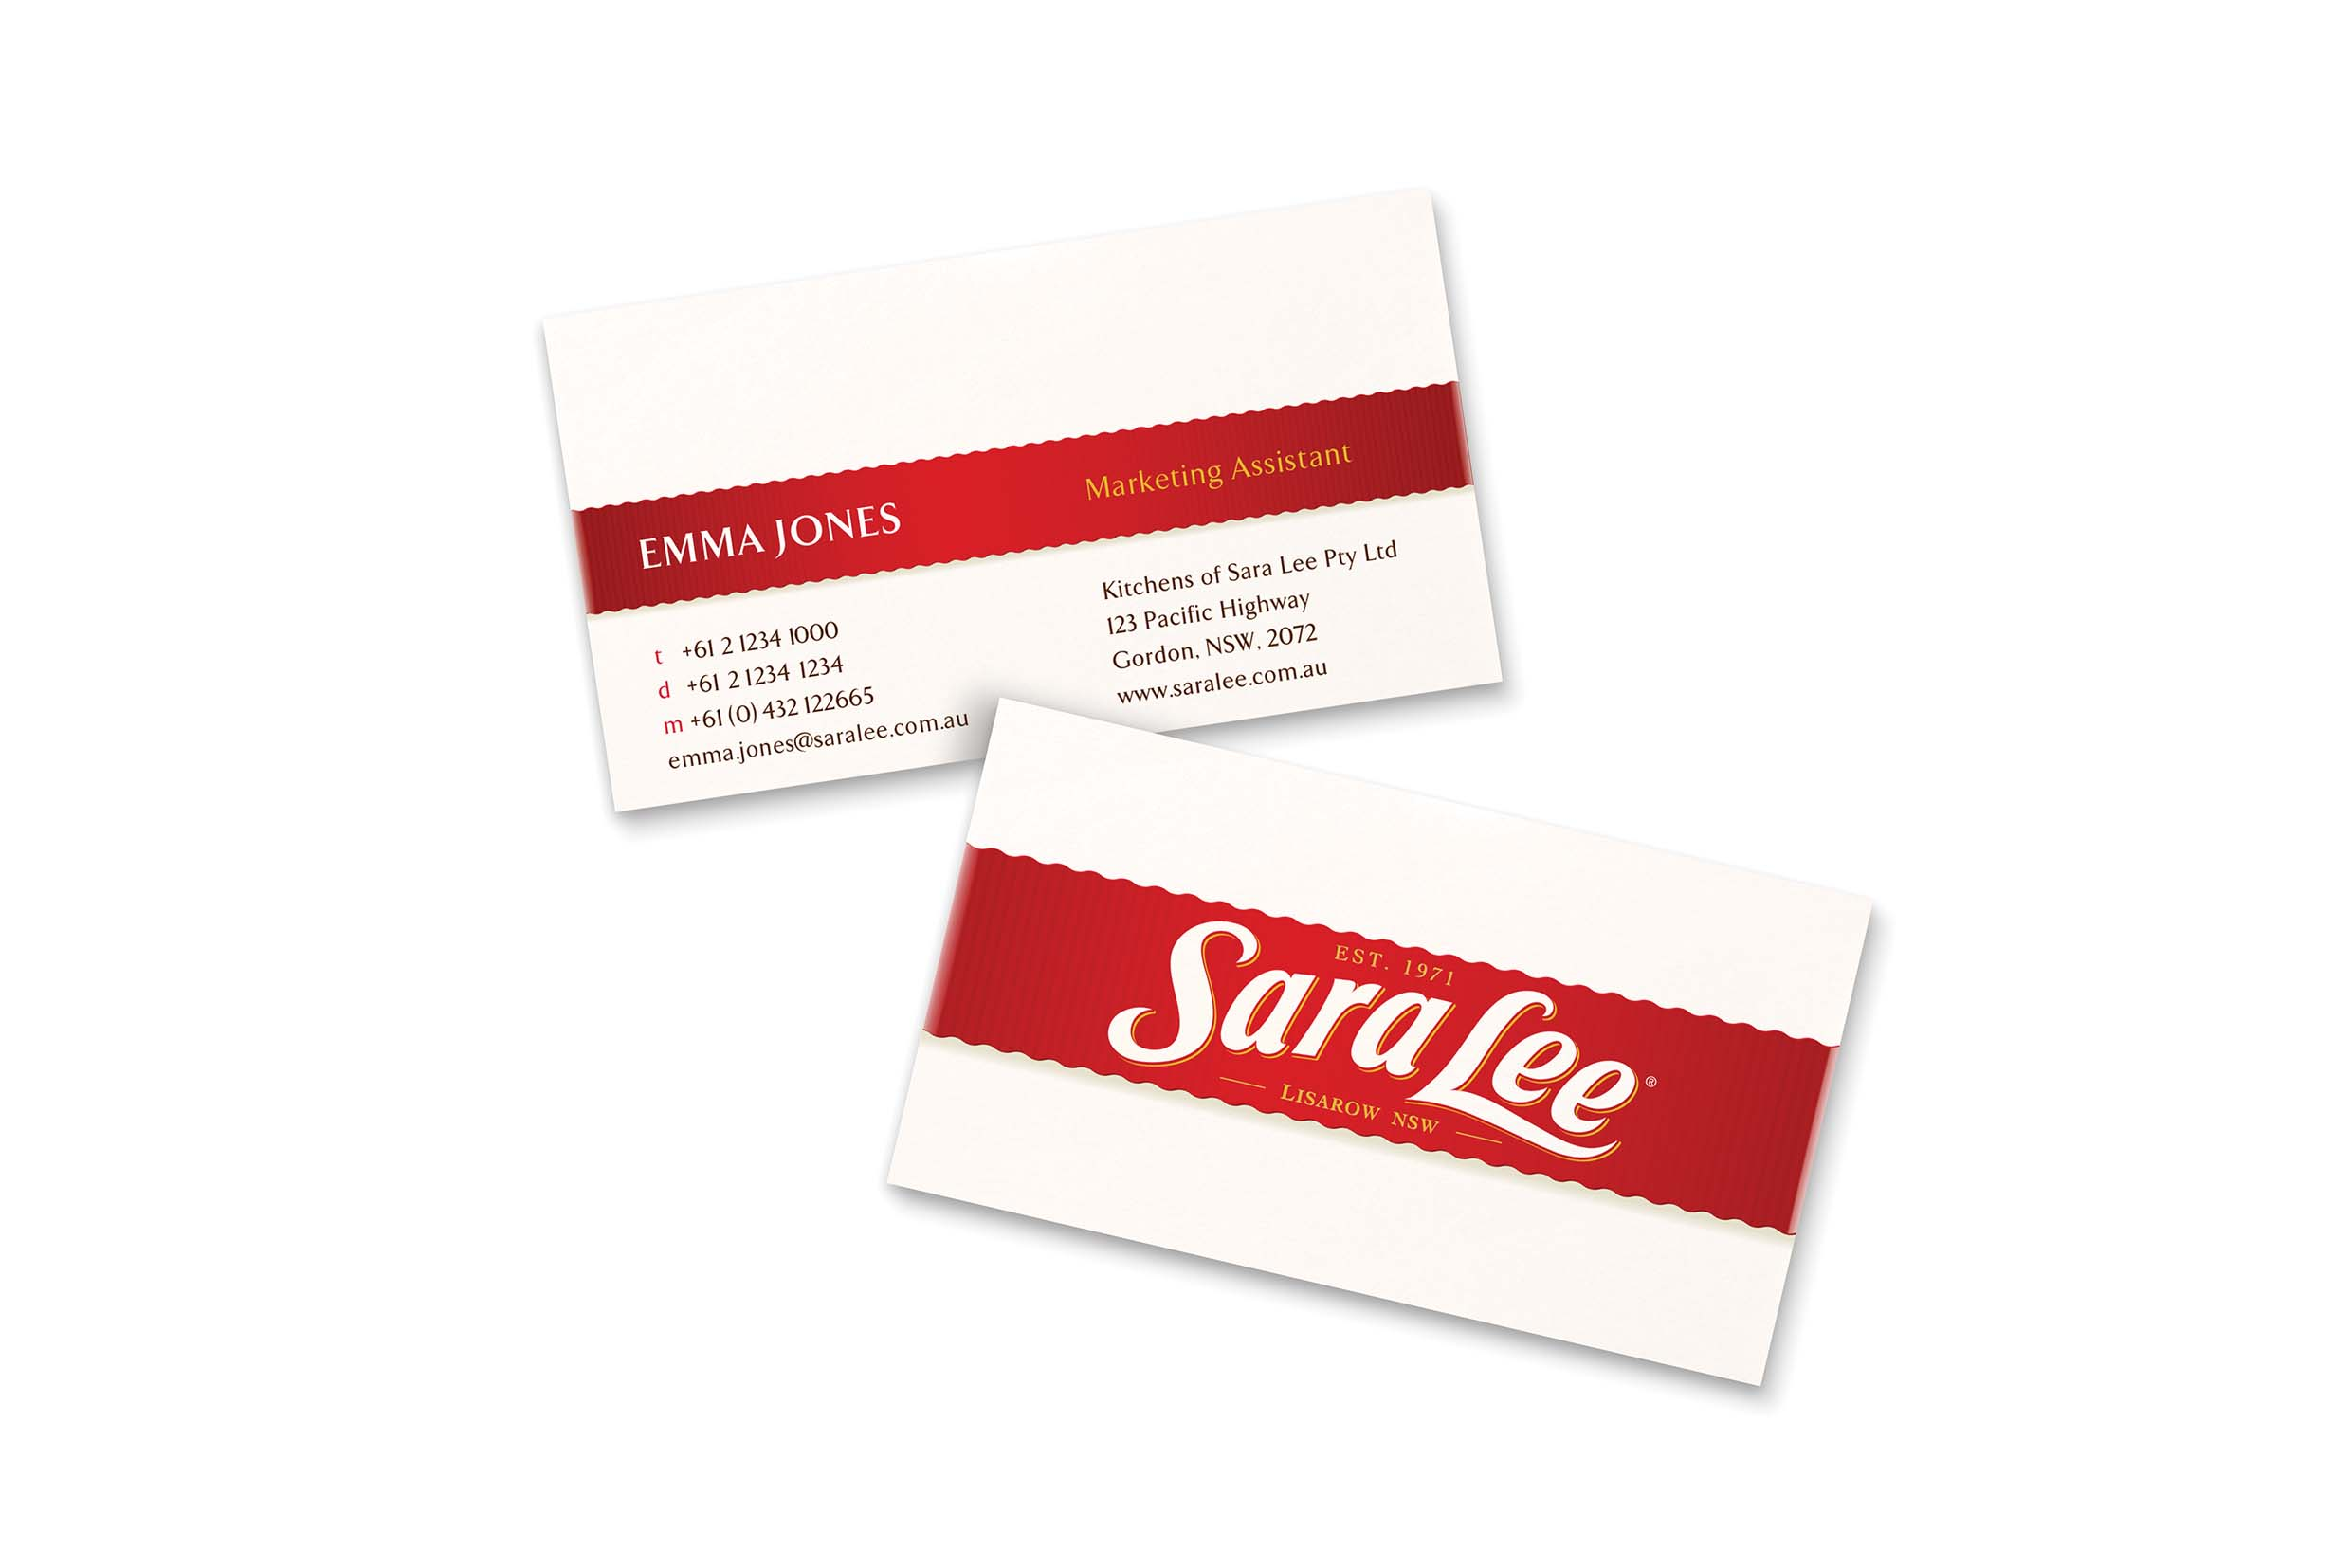 Sara Lee_Identity_Business card_150 dpi_RGB.jpg